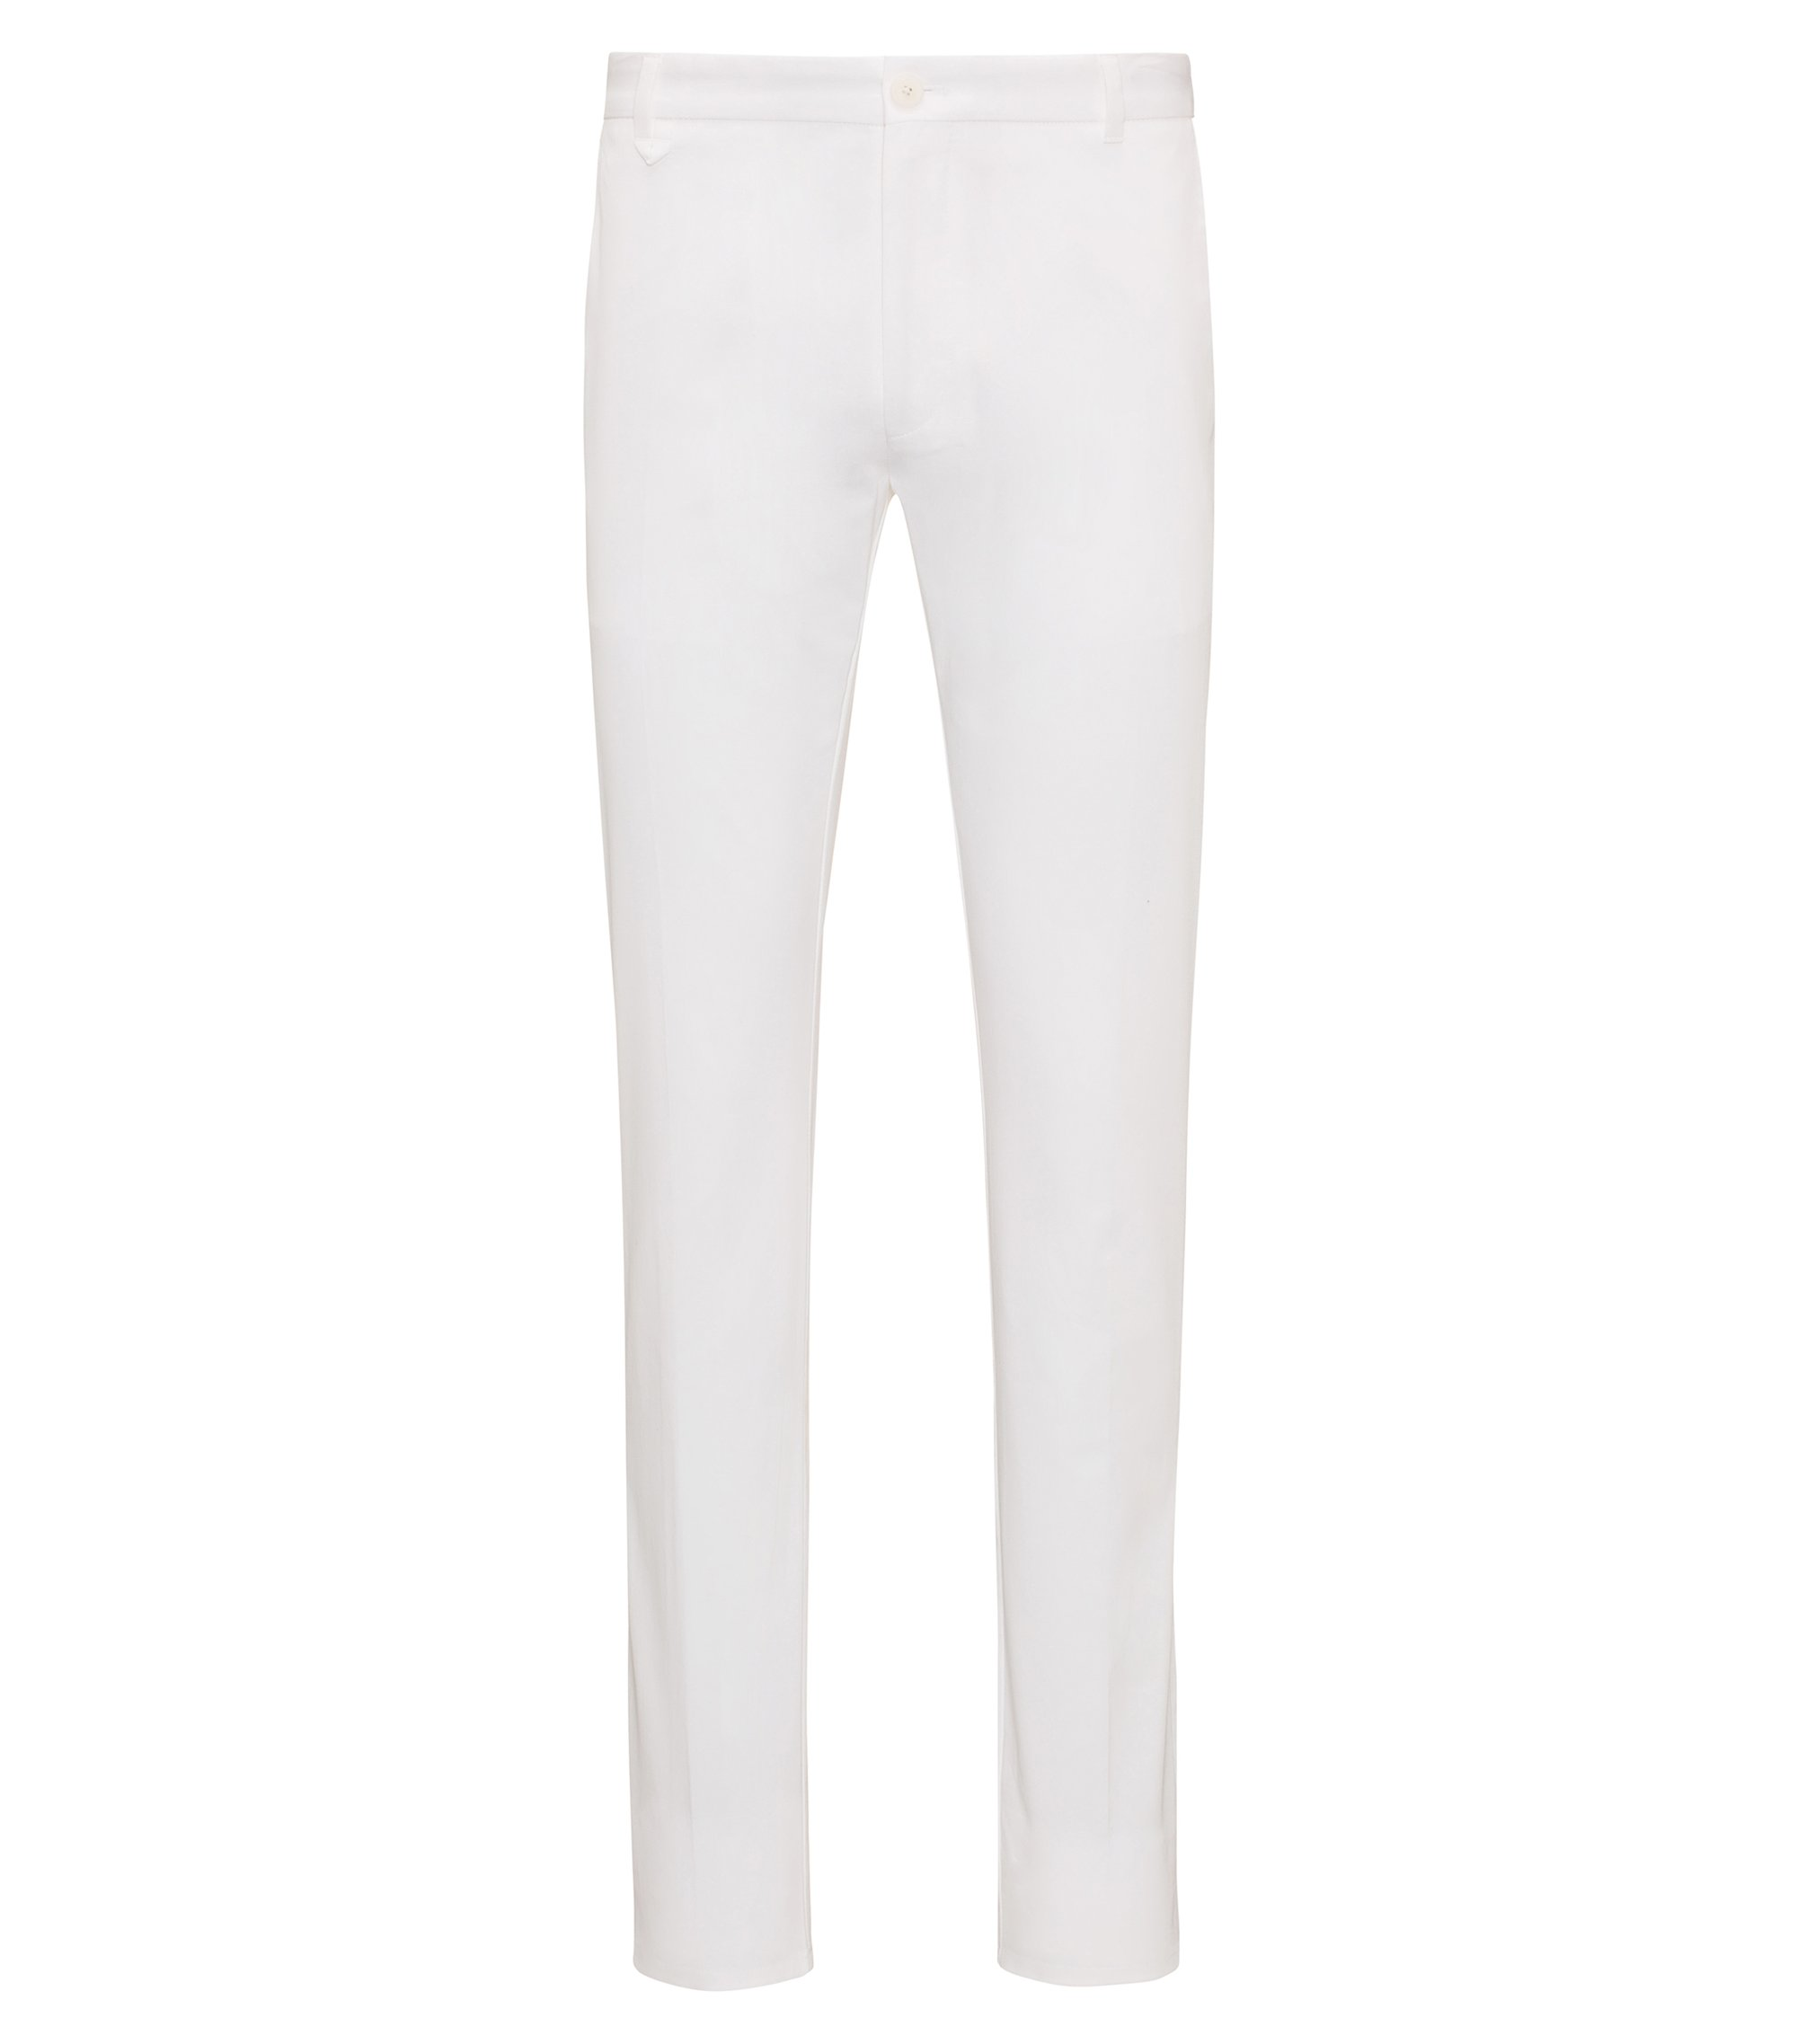 Extra-slim-fit trousers in stretch cotton, White